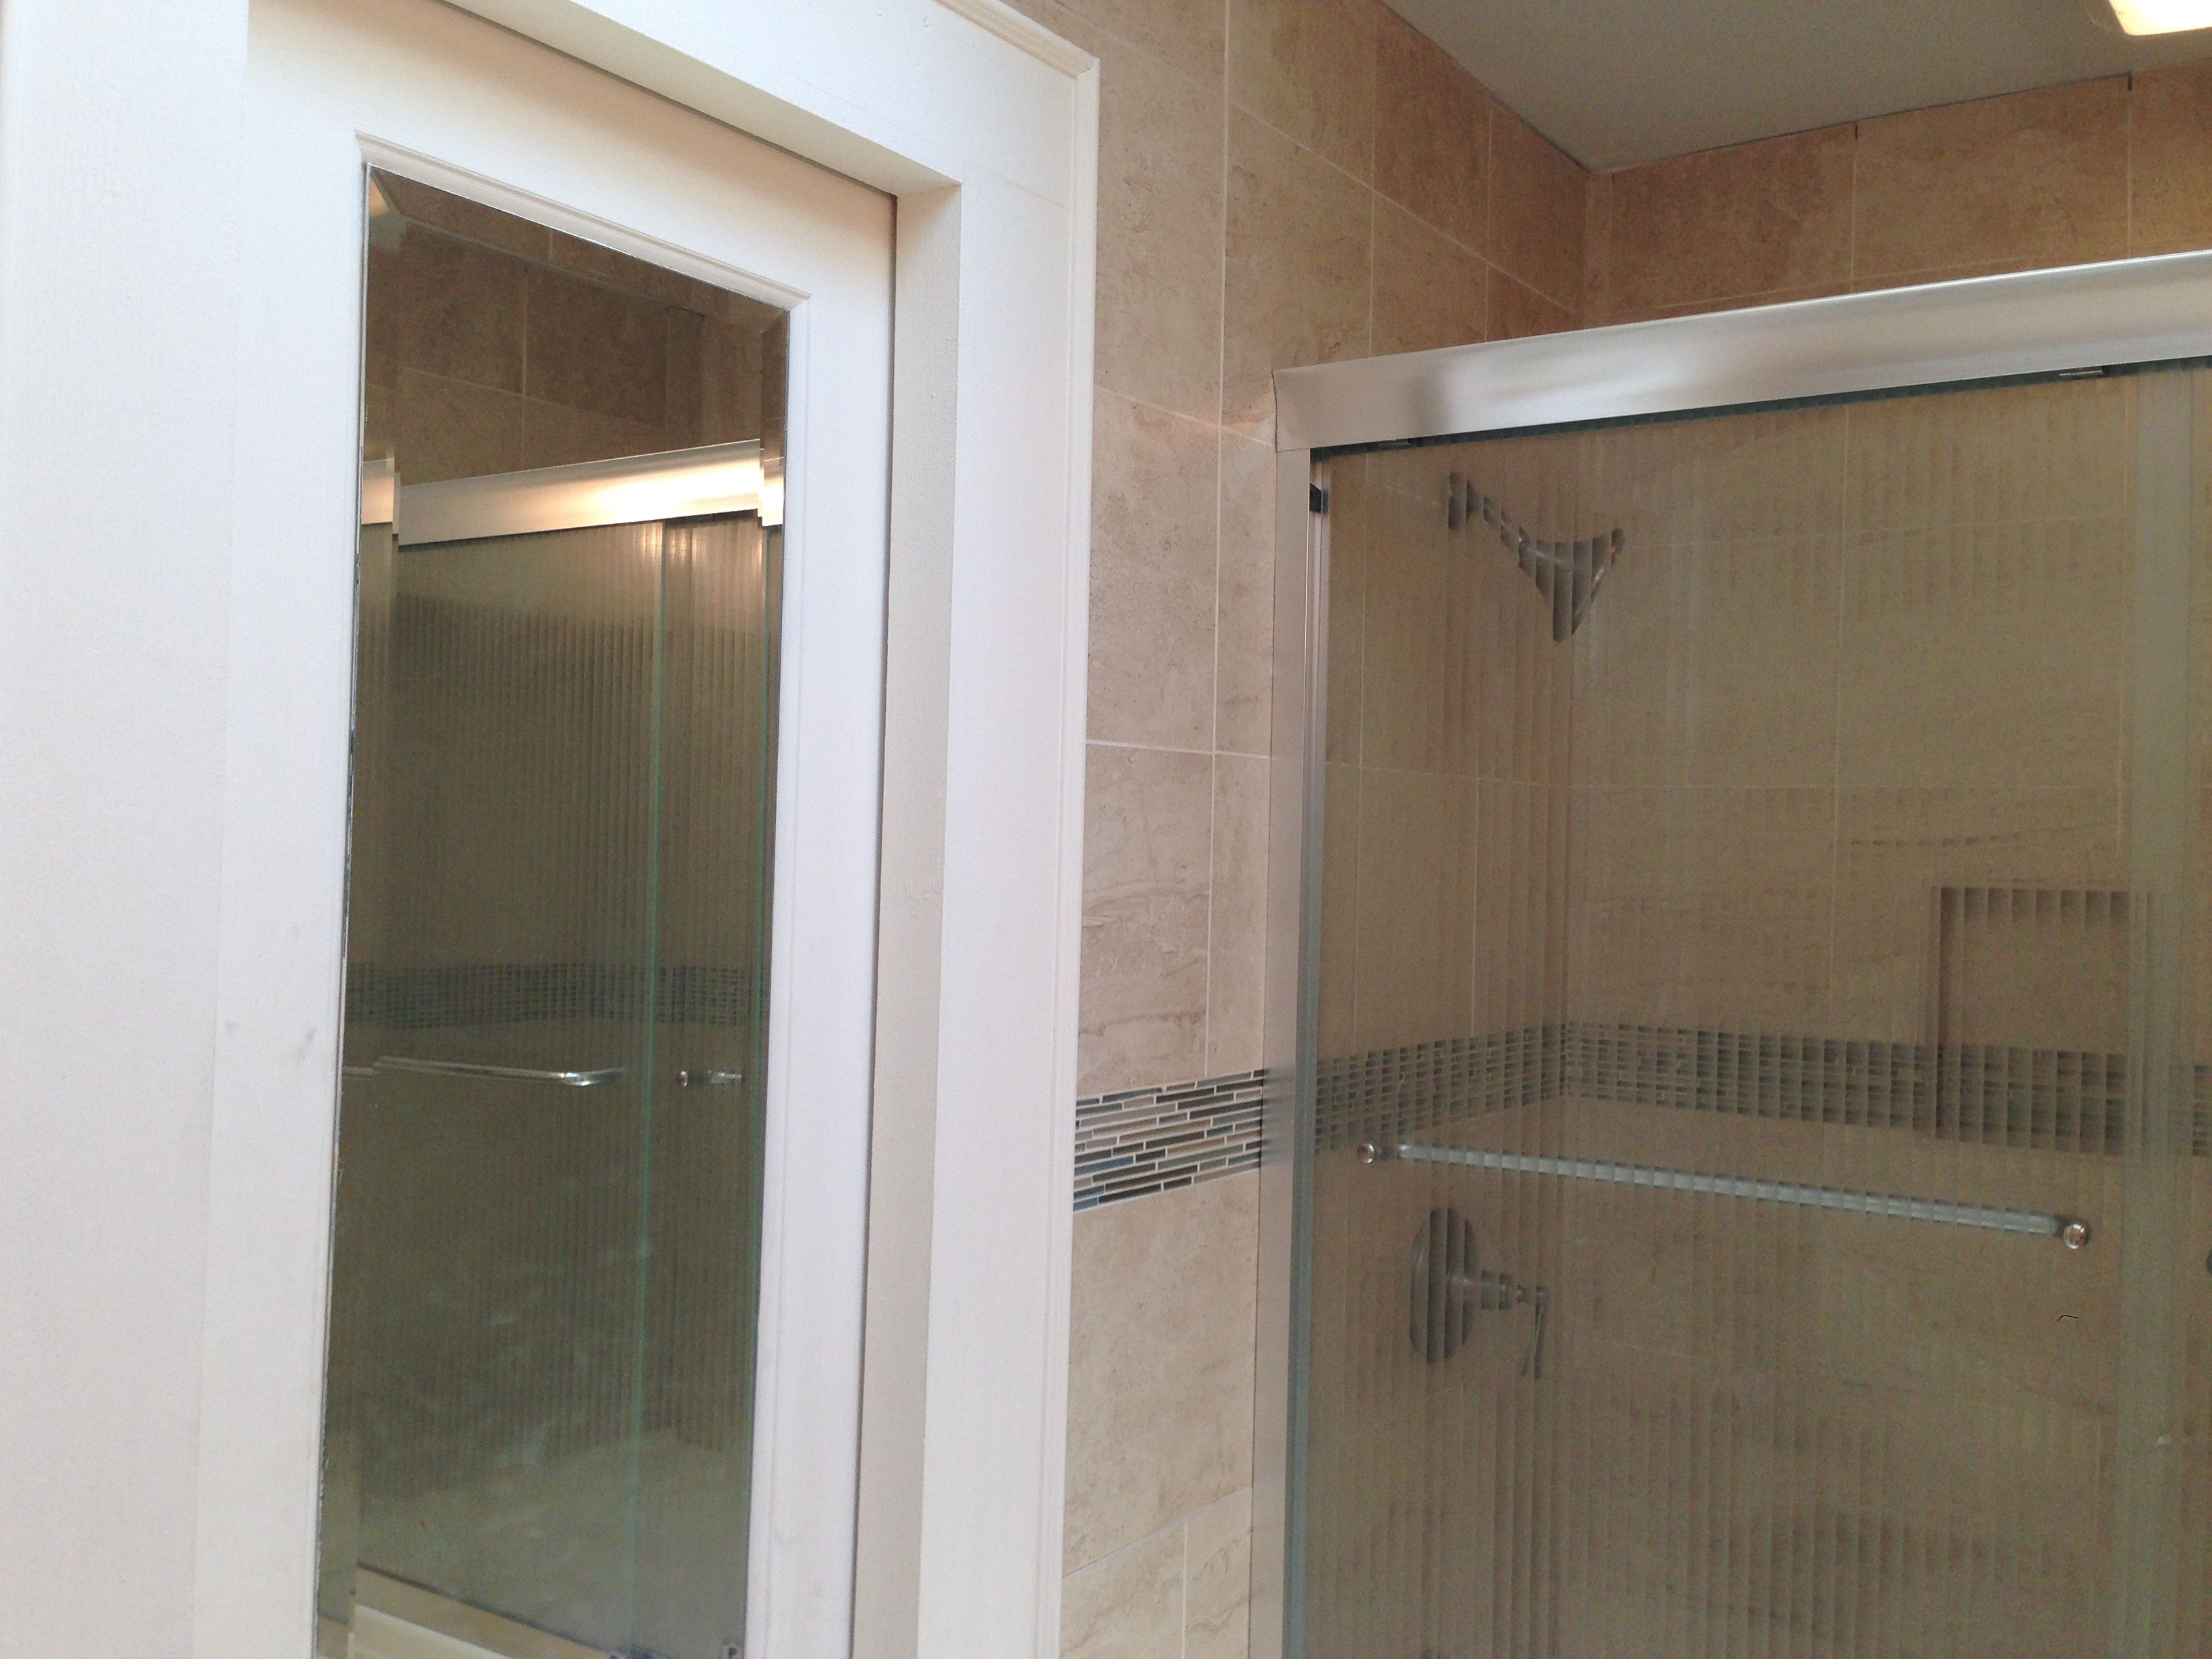 a mirrored pocket door was added to this small bathroom